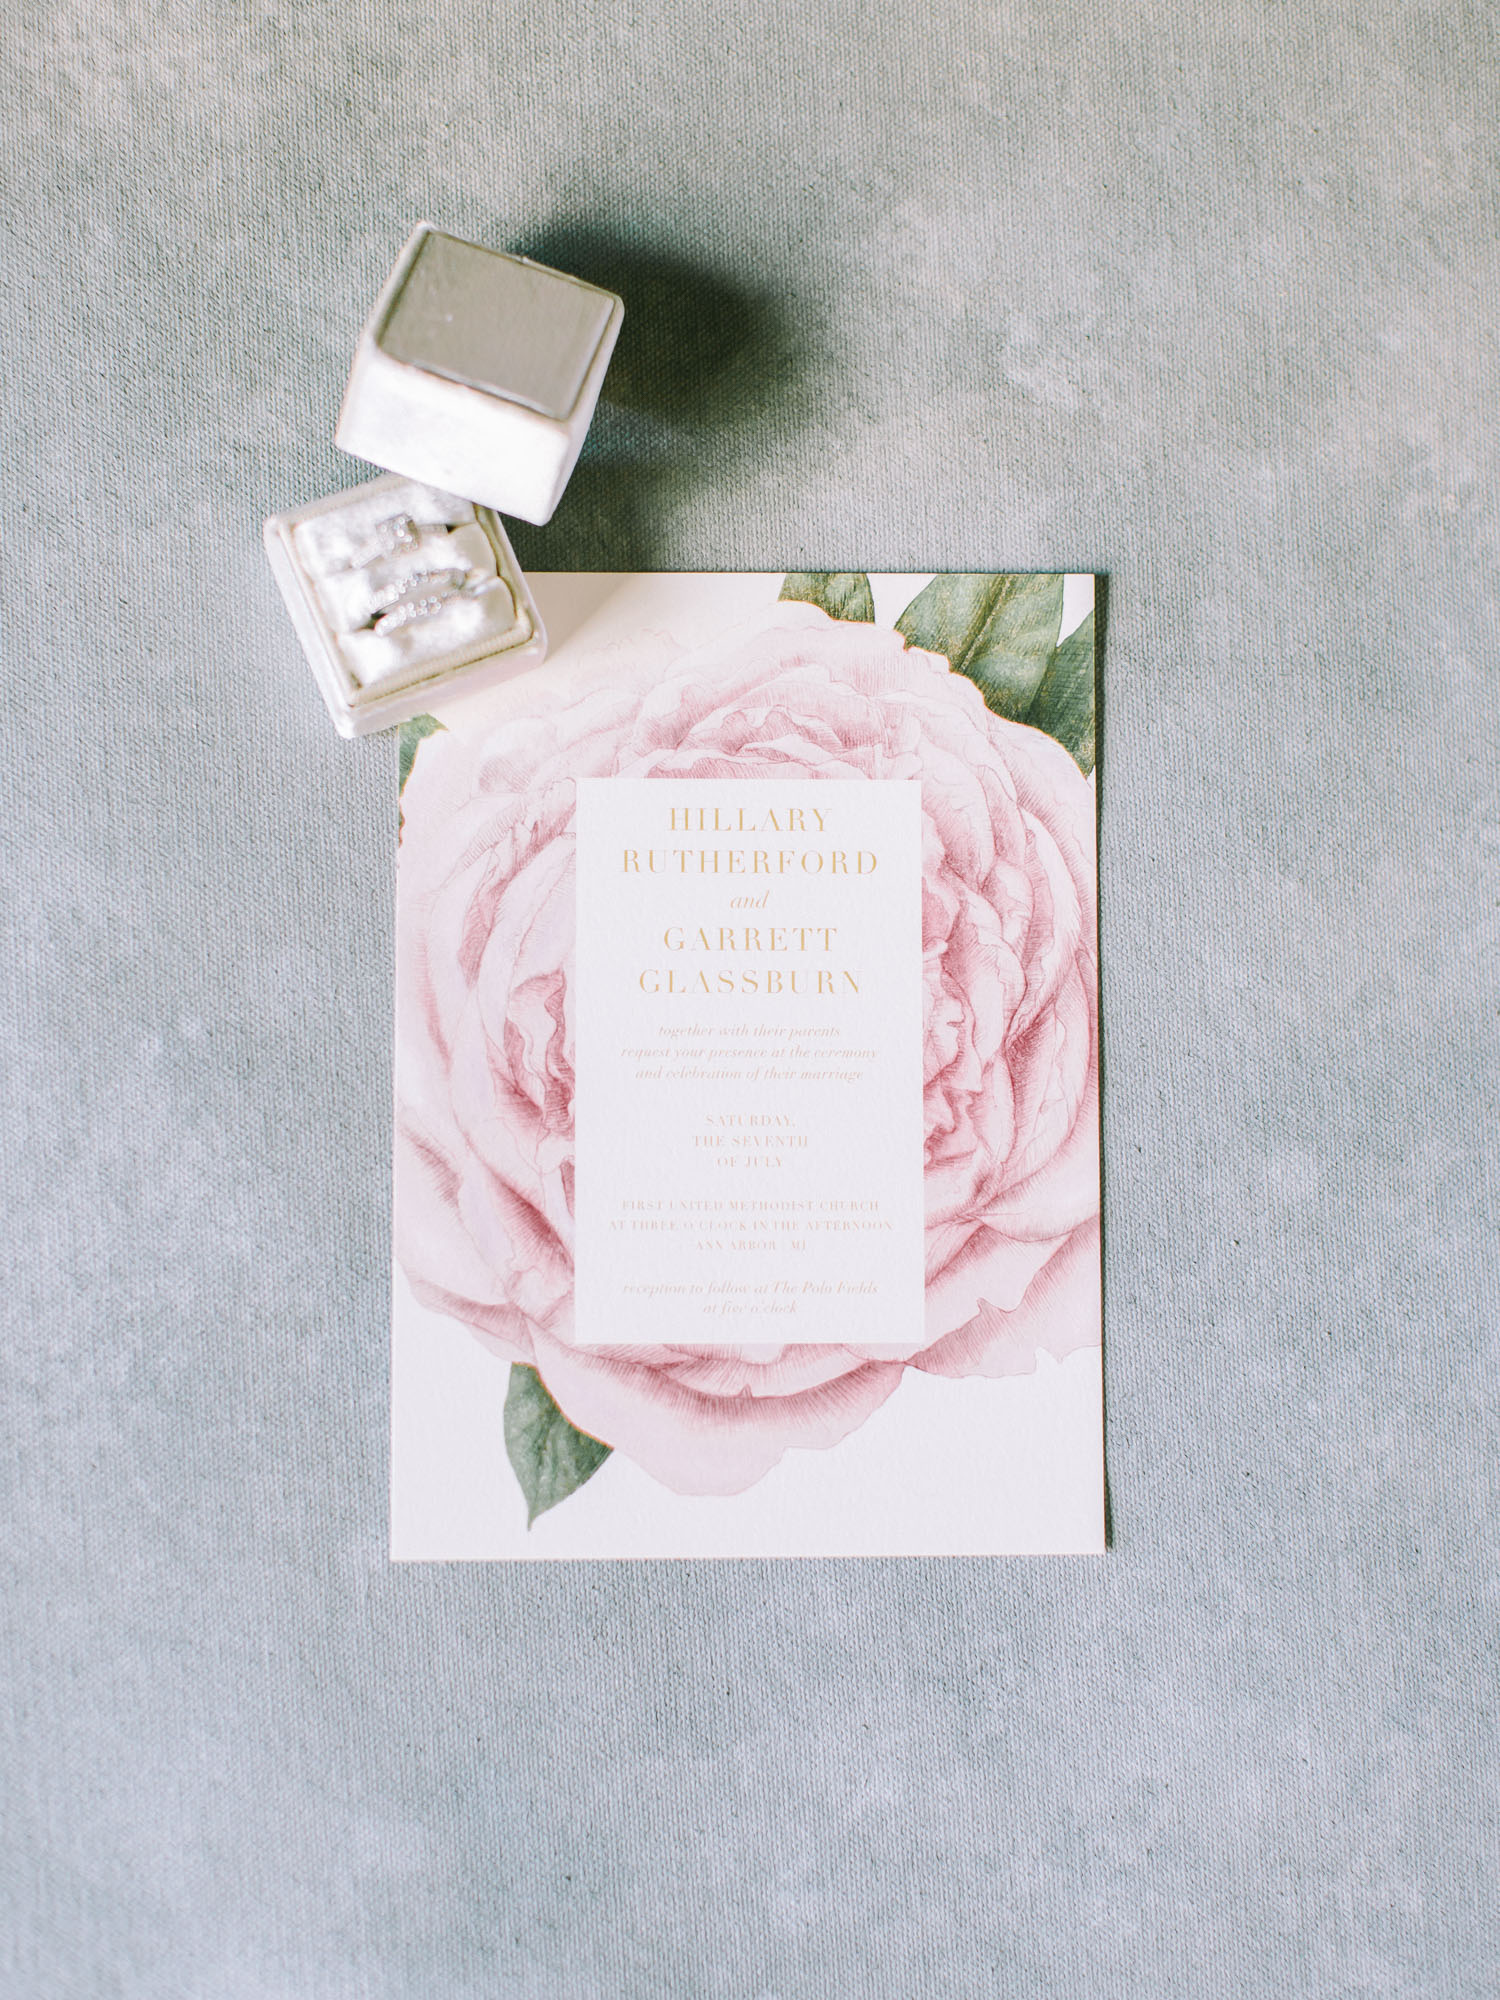 A floral wedding invitation rests on a painterly blue background along with a diamond ring in a velvet box in Ann Arbor, Michigan